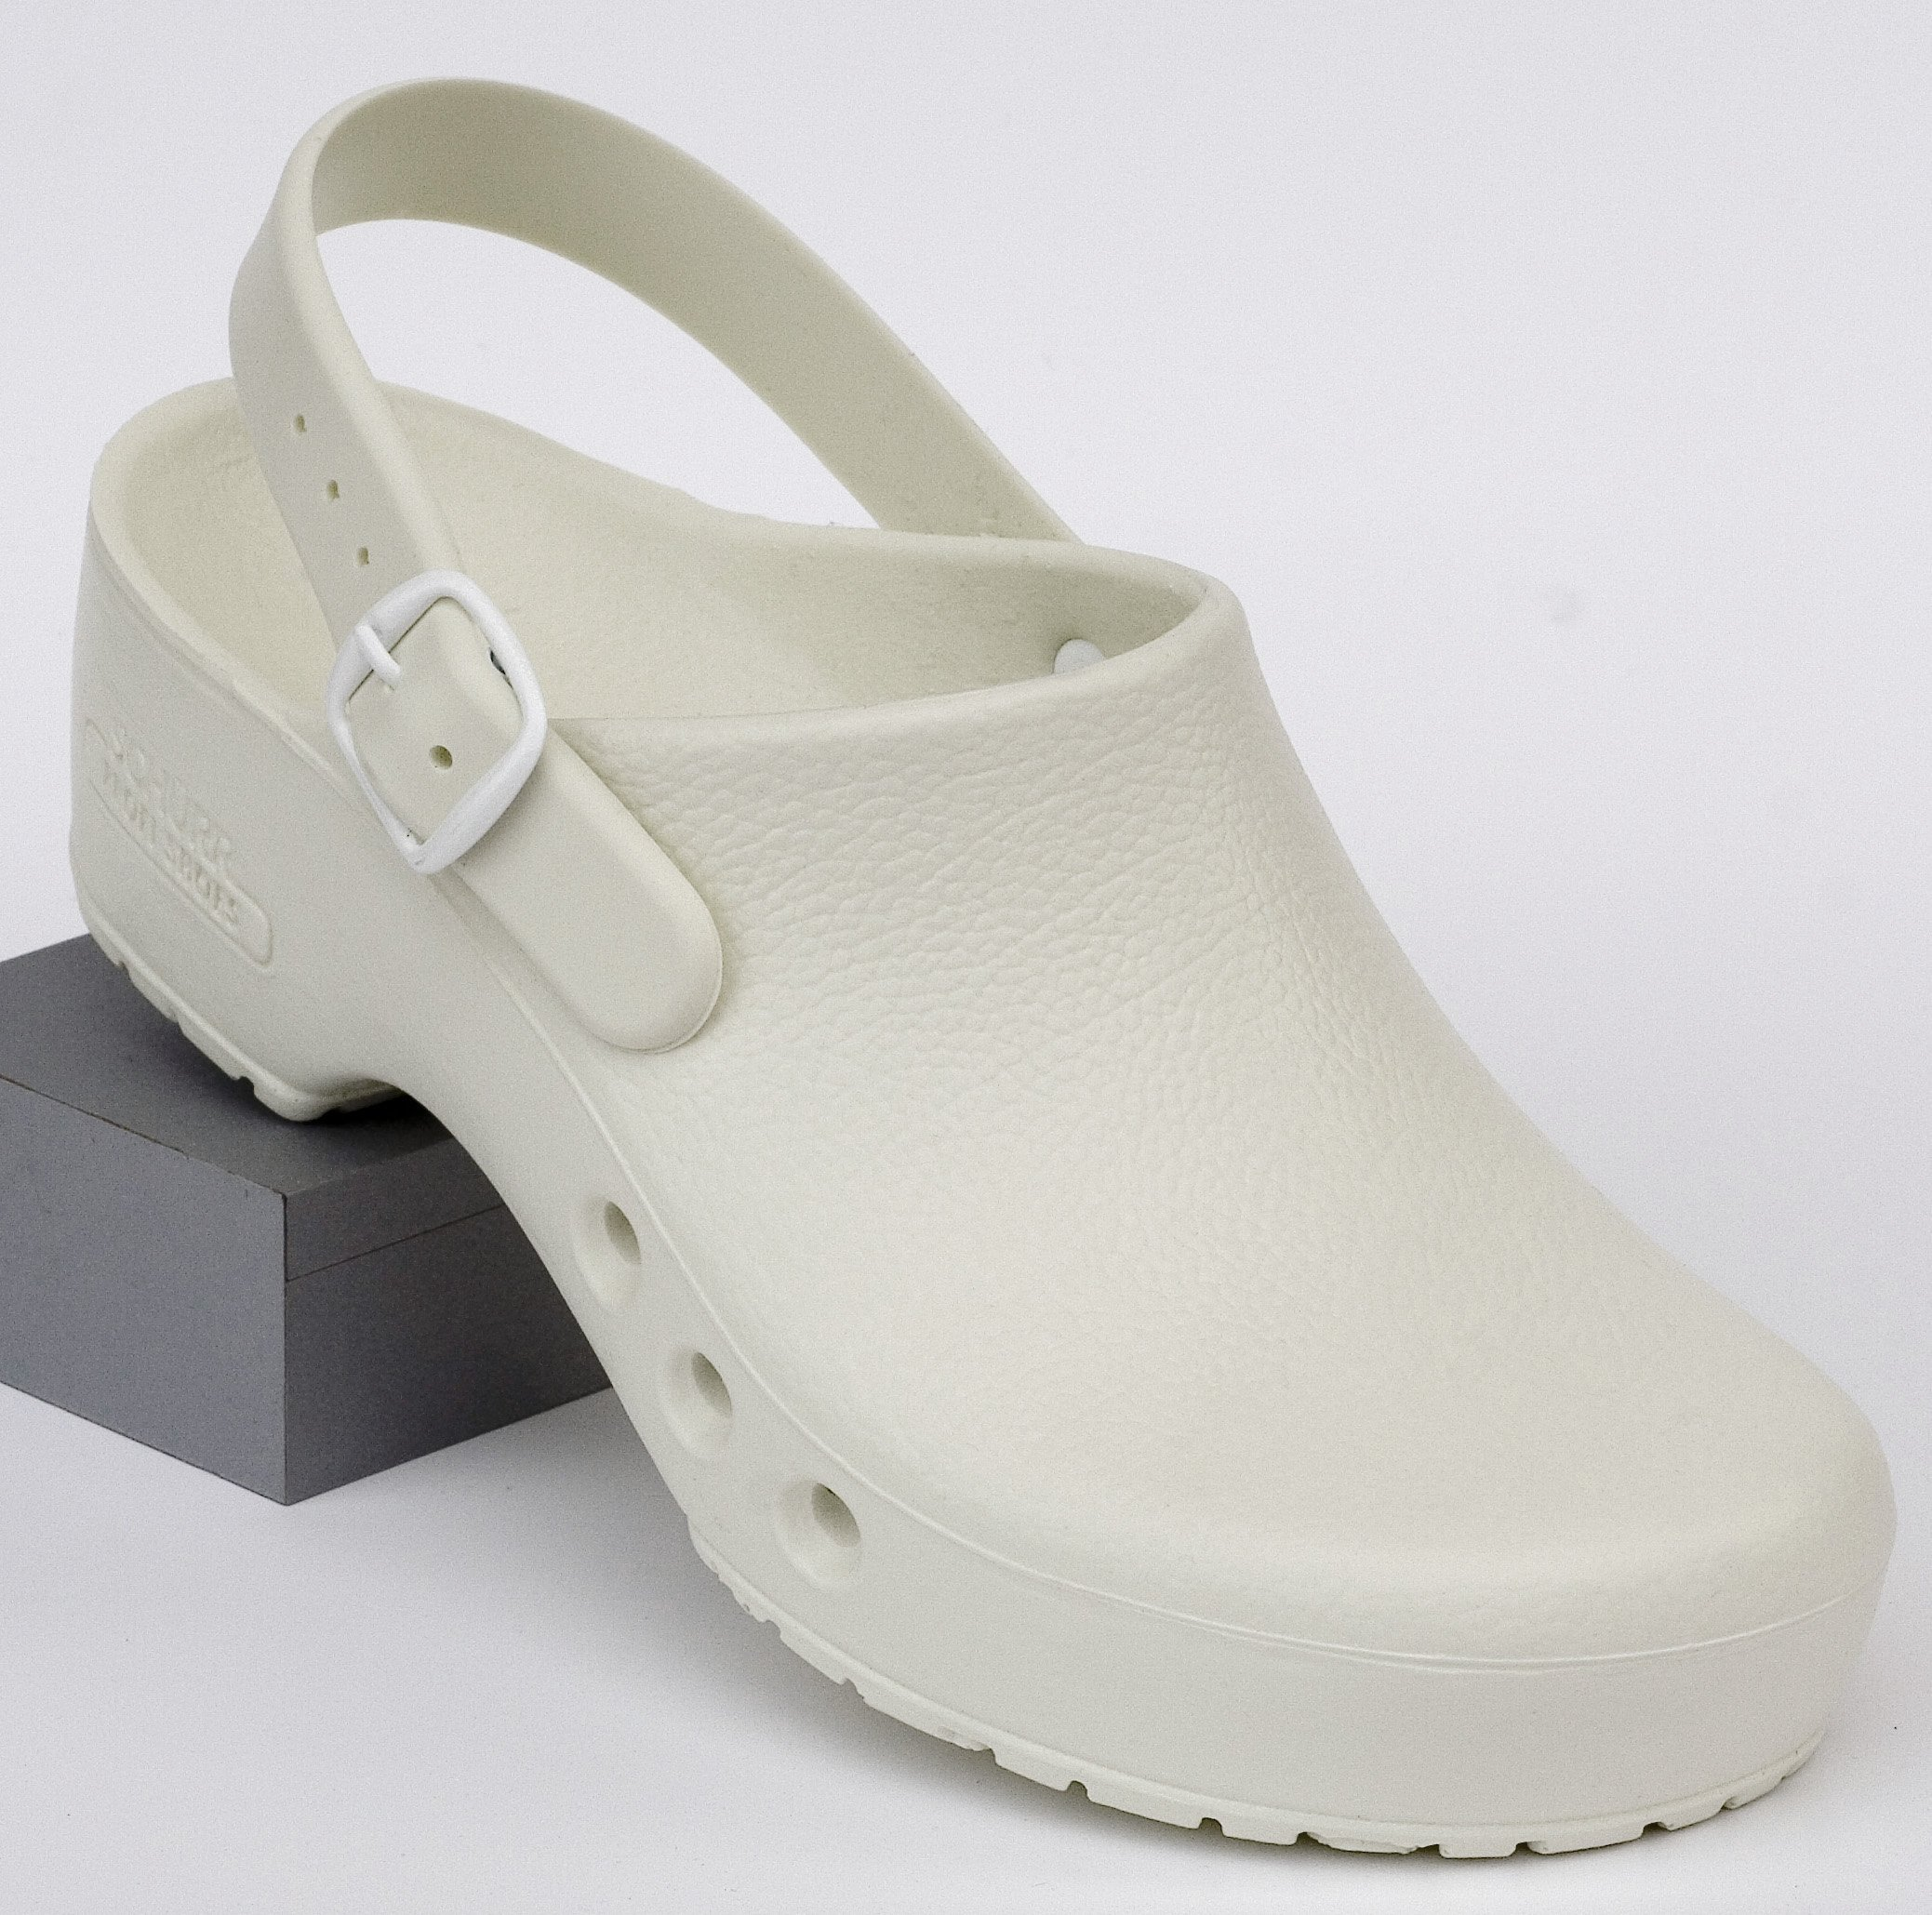 Schurr Washable Clog Special White 2470